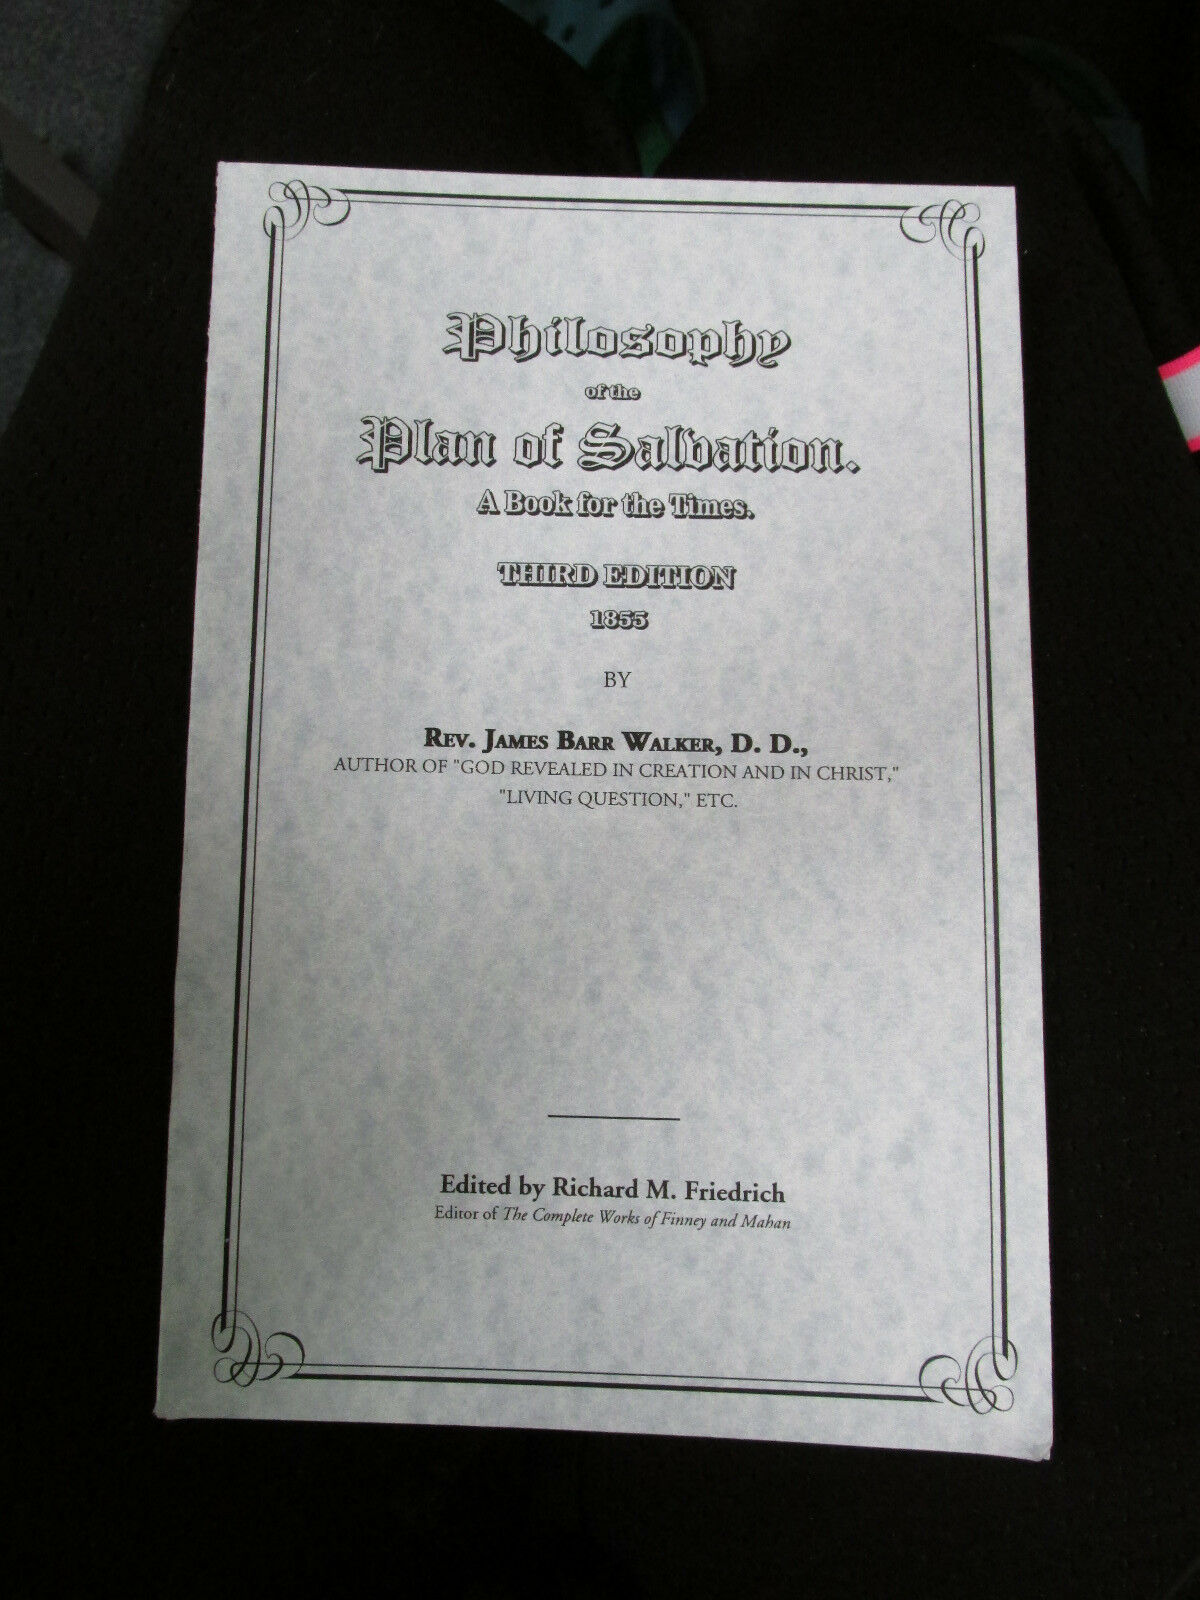 Philosophy of the Plan of Salvation 3rd edition by Rev. James Barr Walker D. D |